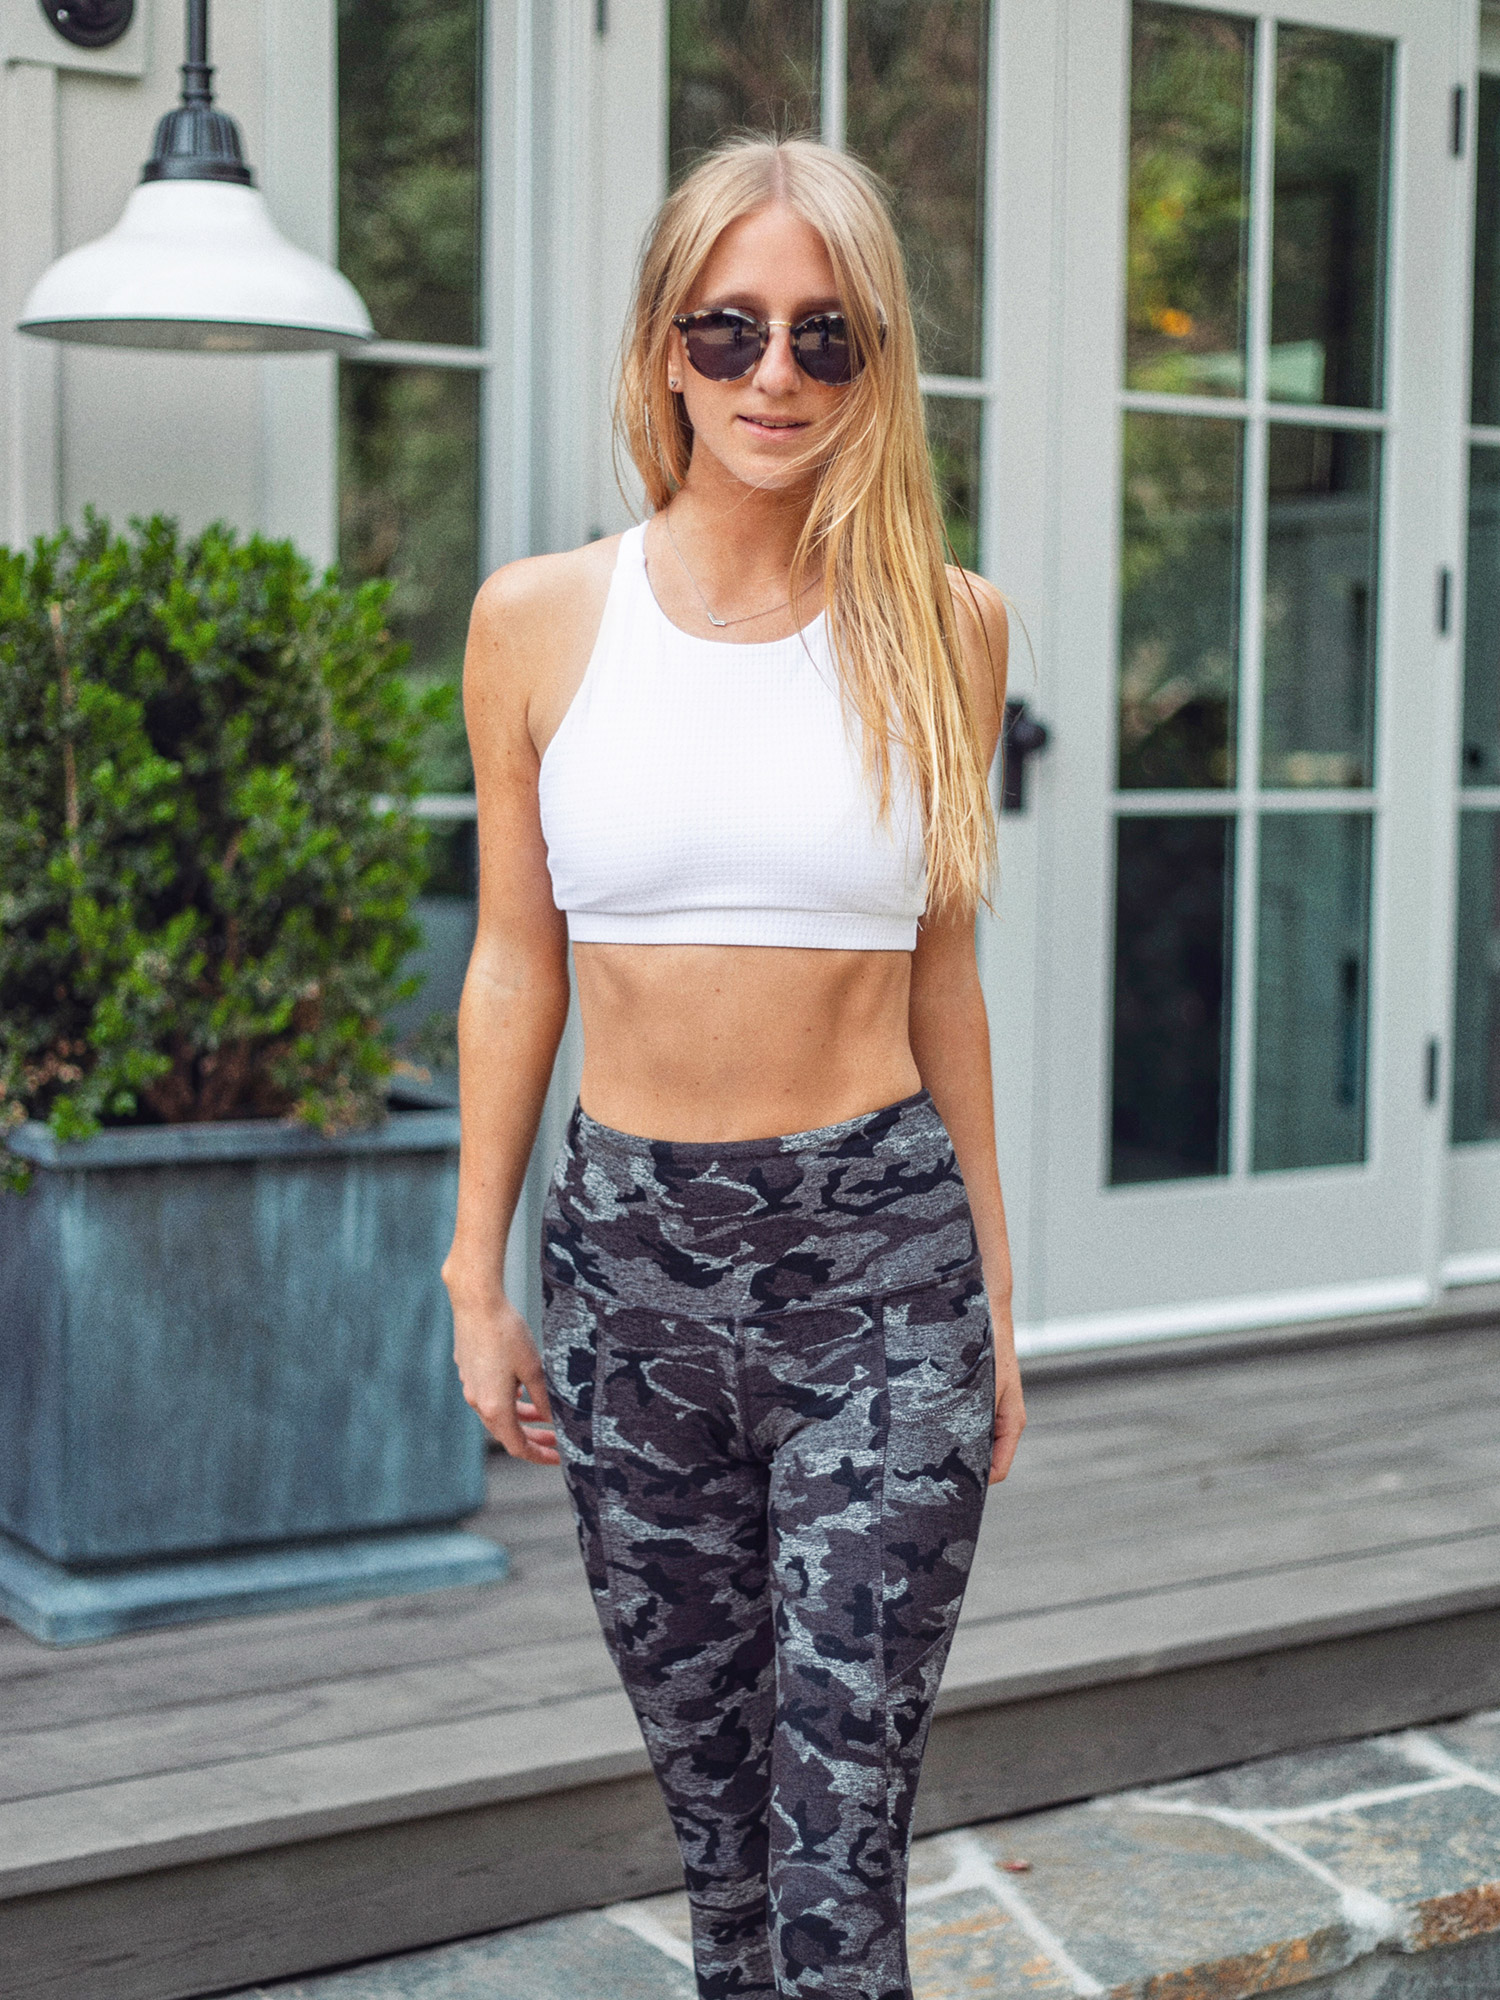 kelly-wirht-fiance-photography-cute-workout-clothes-strut-this-00030.jpg